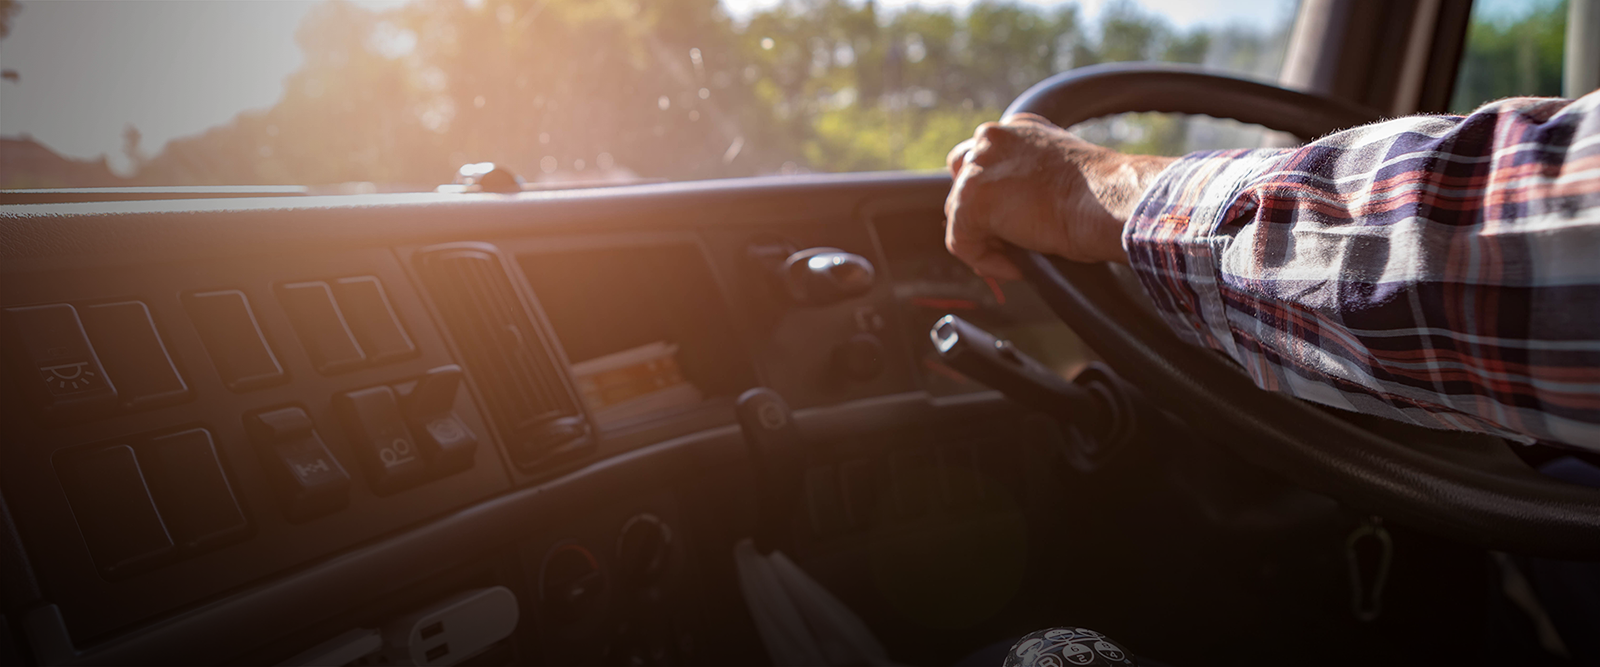 Preparing For Your First Year of Truck Driving